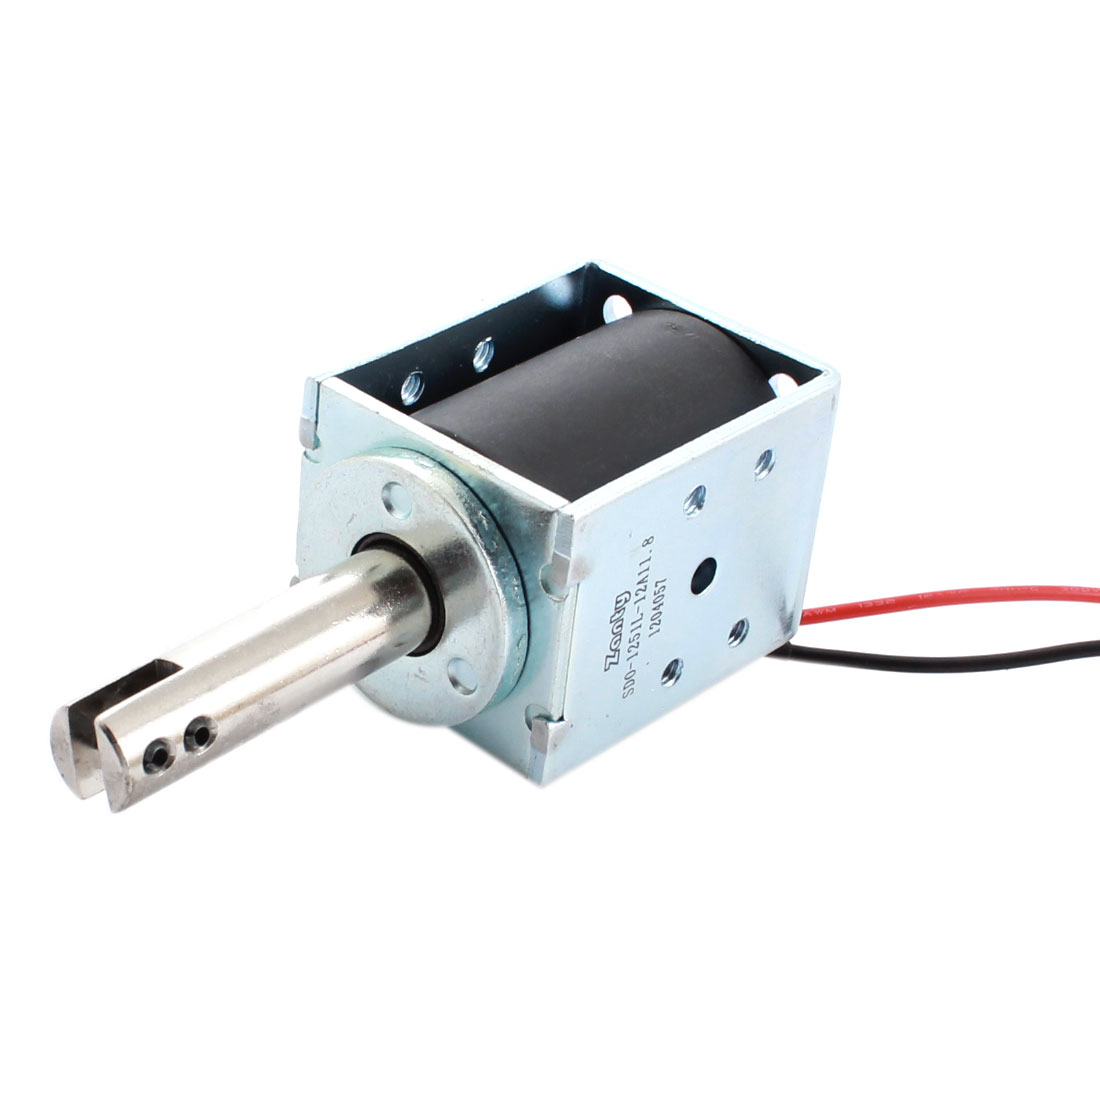 DC 12V 1.01A 12.2W 10mm 600g Open Frame Linear Motion Pull Type Solenoid Electromagnet Actuator